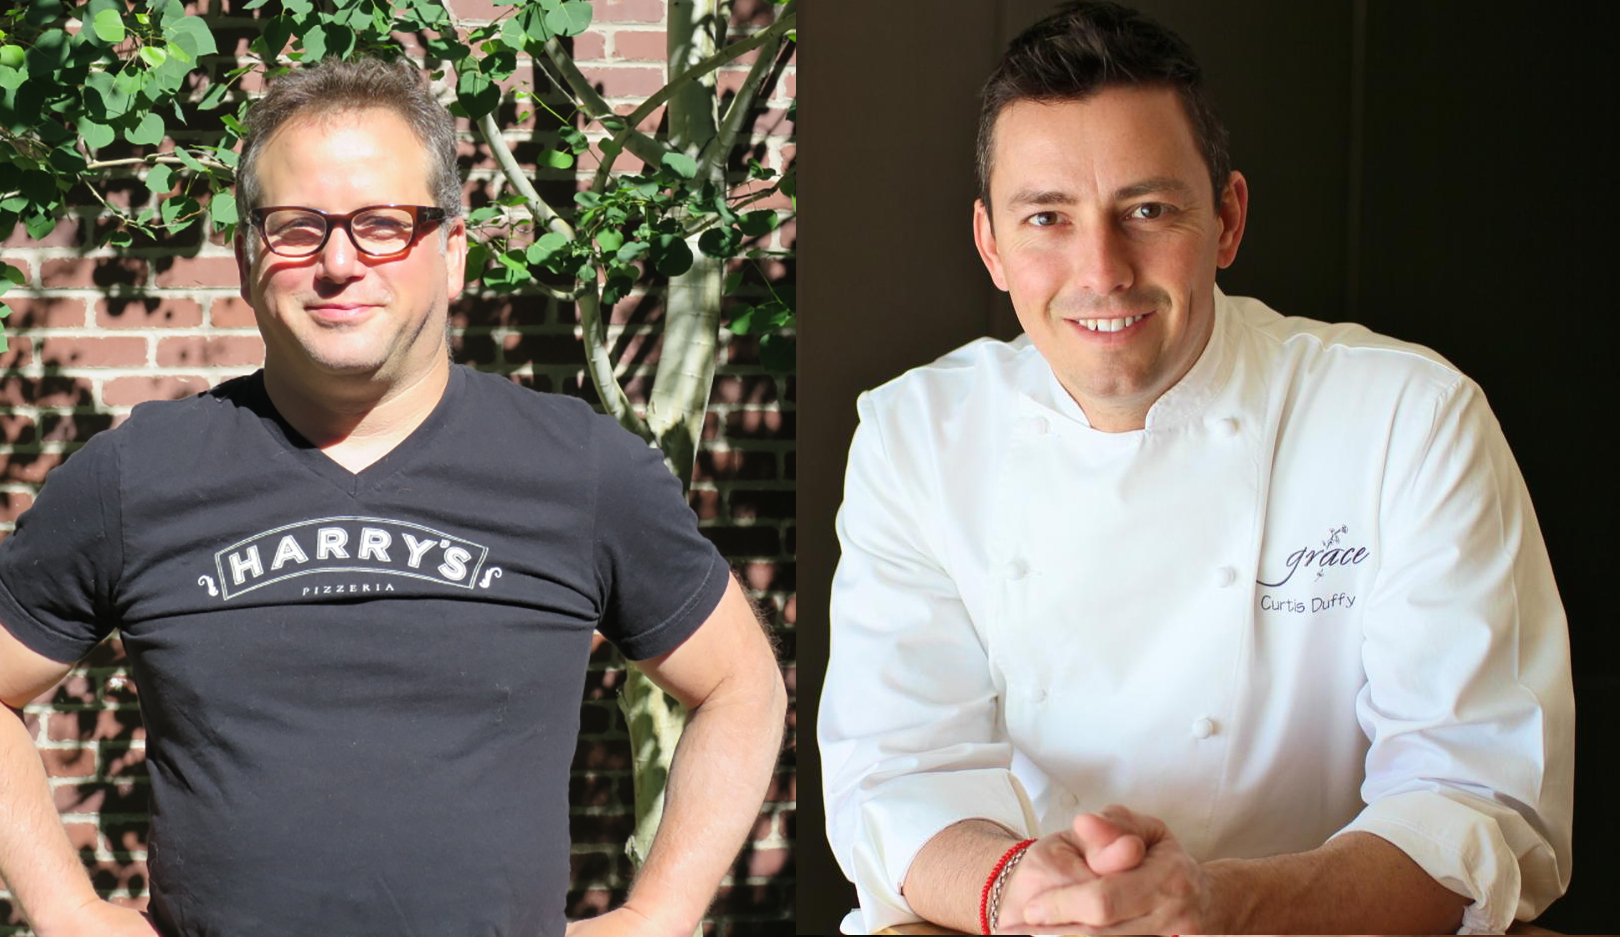 [Updated] Chicago Chefs Paul Kahan and Curtis Duffy Are Both Working on New Books